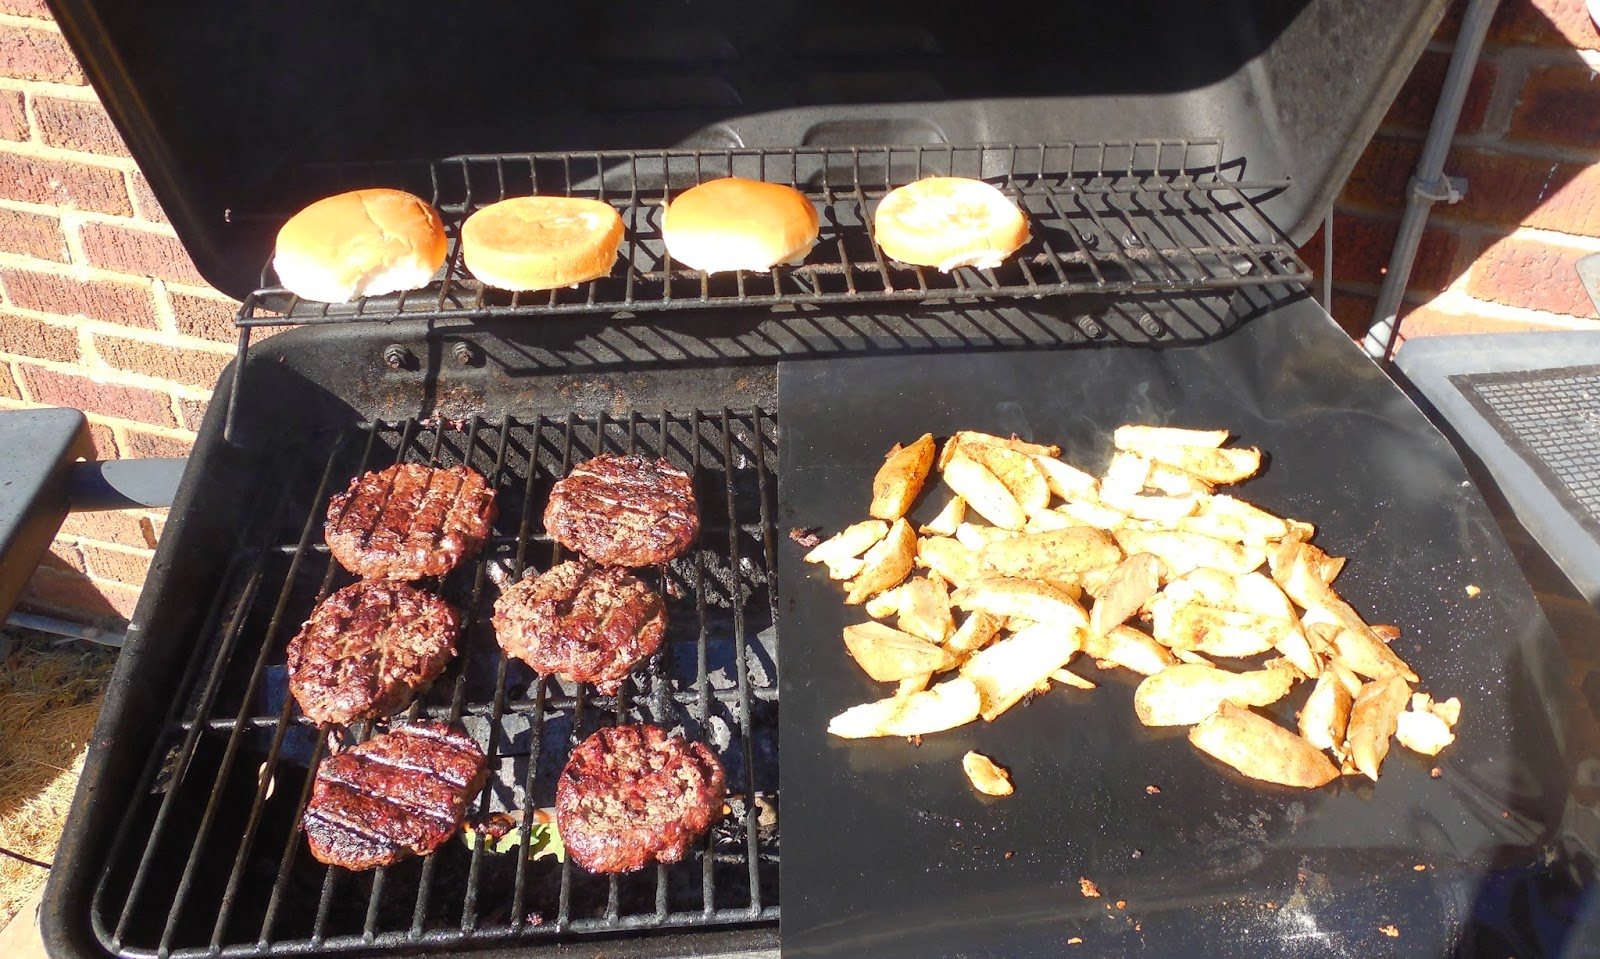 Grilled potatoes and burgers